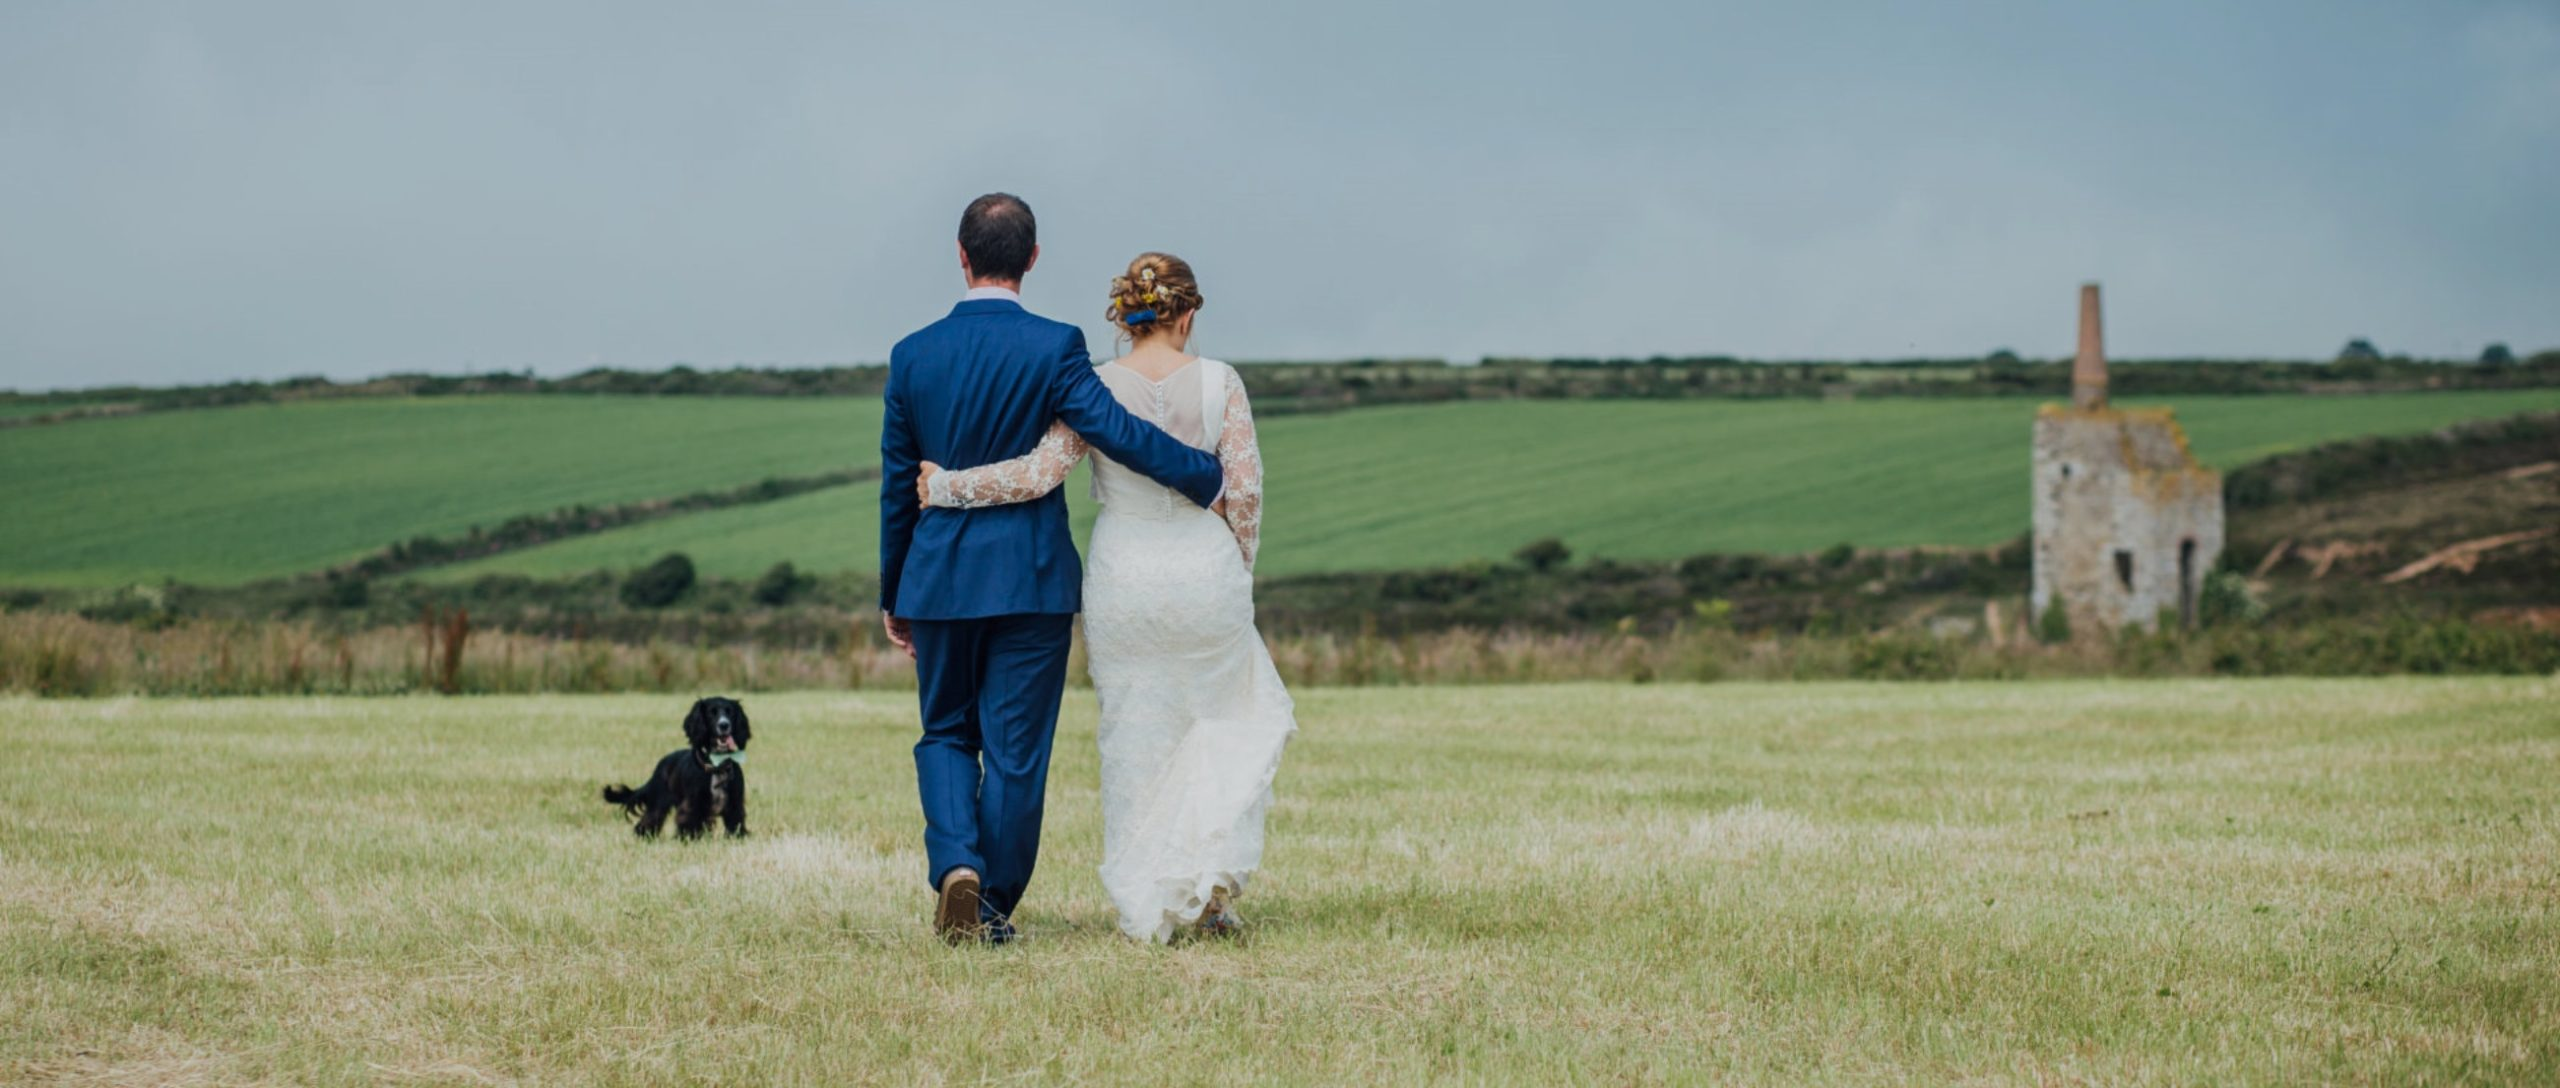 Weddings by the Cornish coast